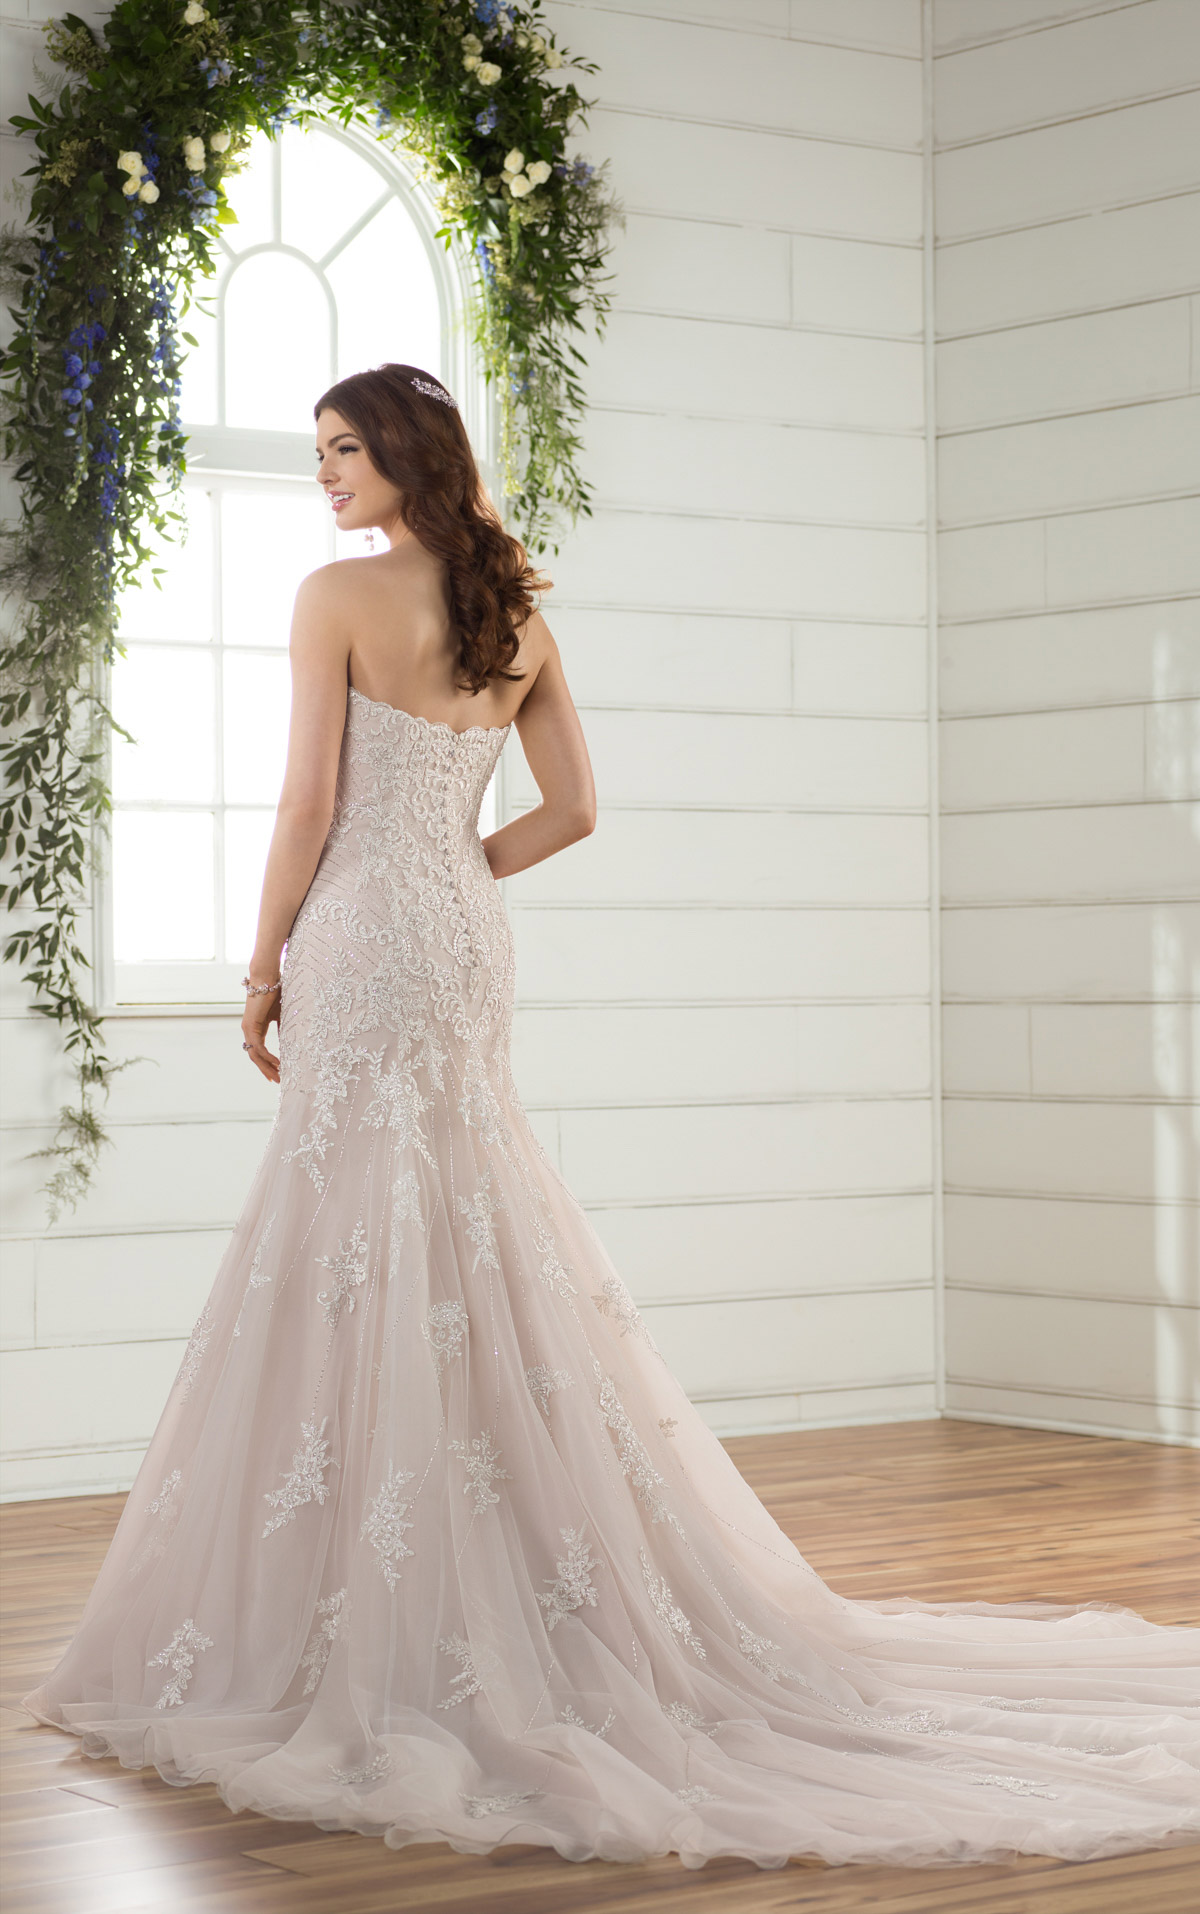 wedding dresses for body shapes photo - 1